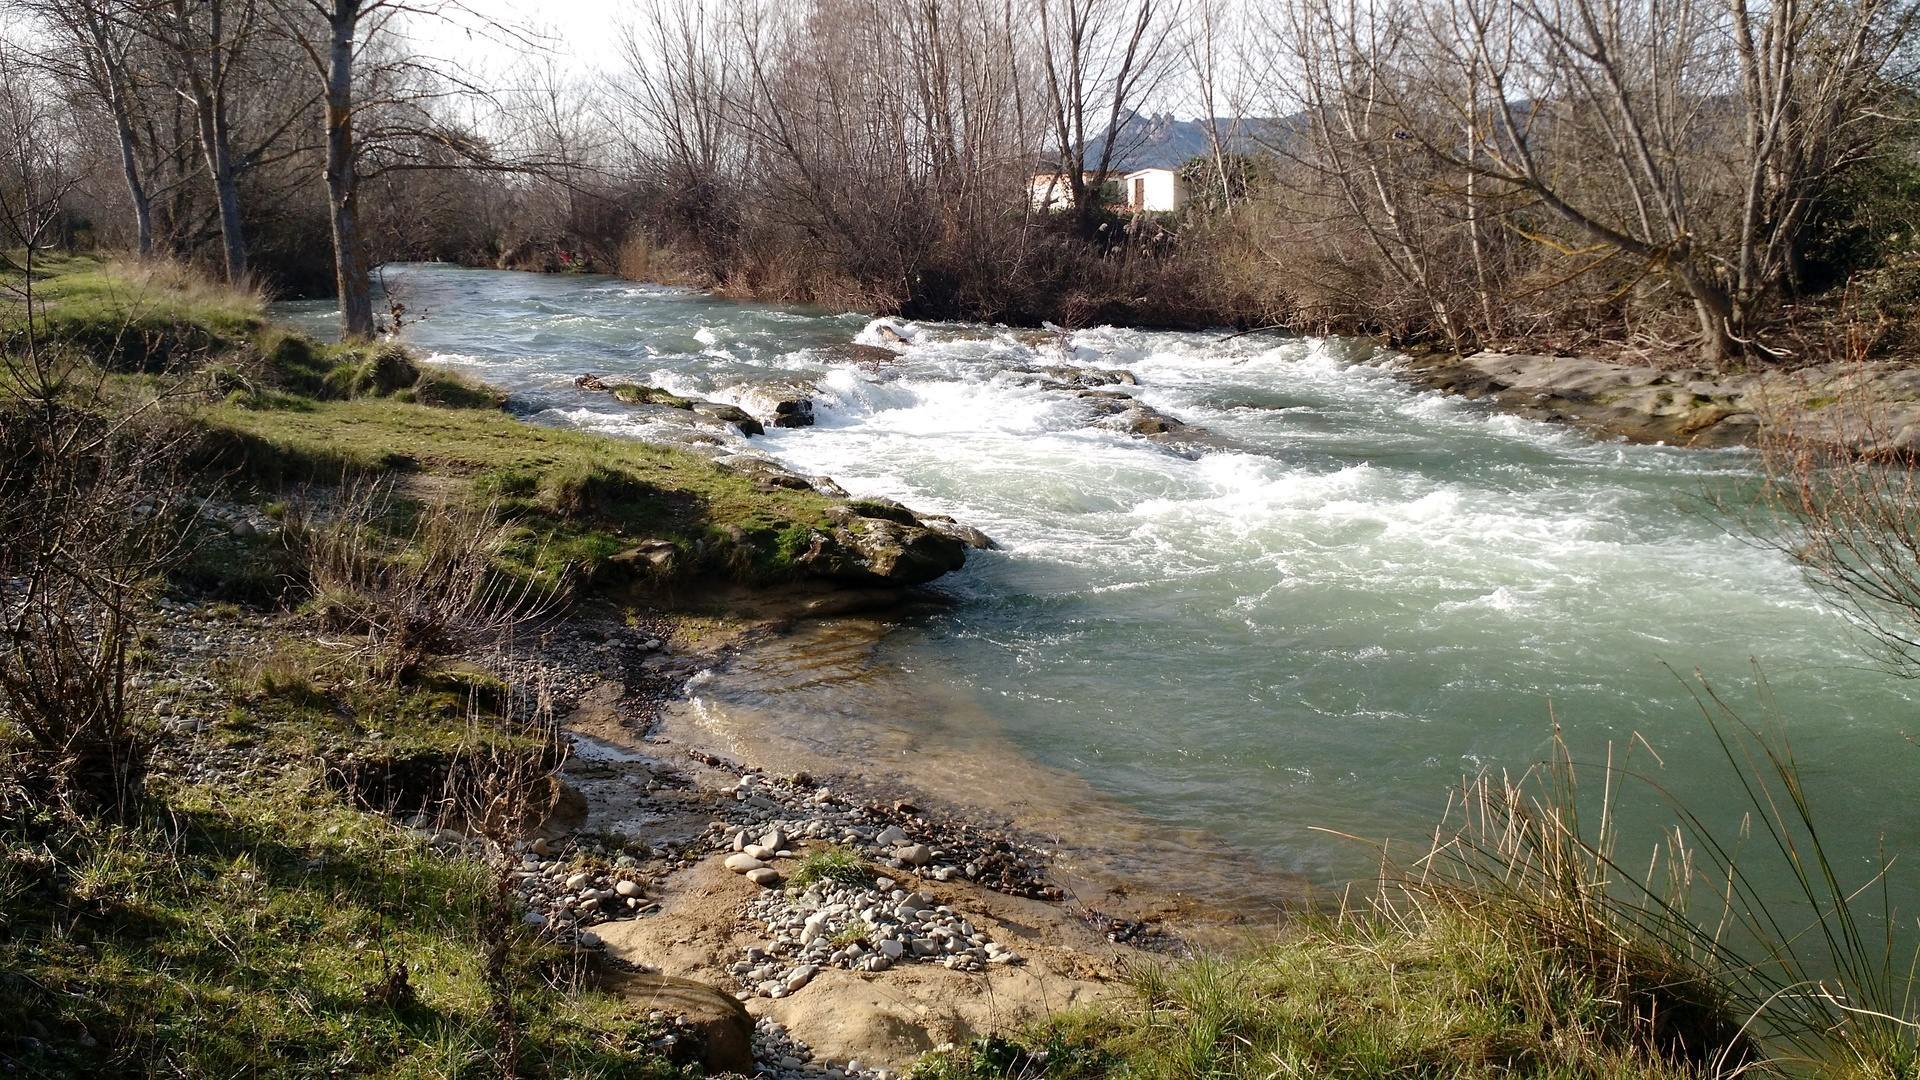 Mini-rapids in the Tirón